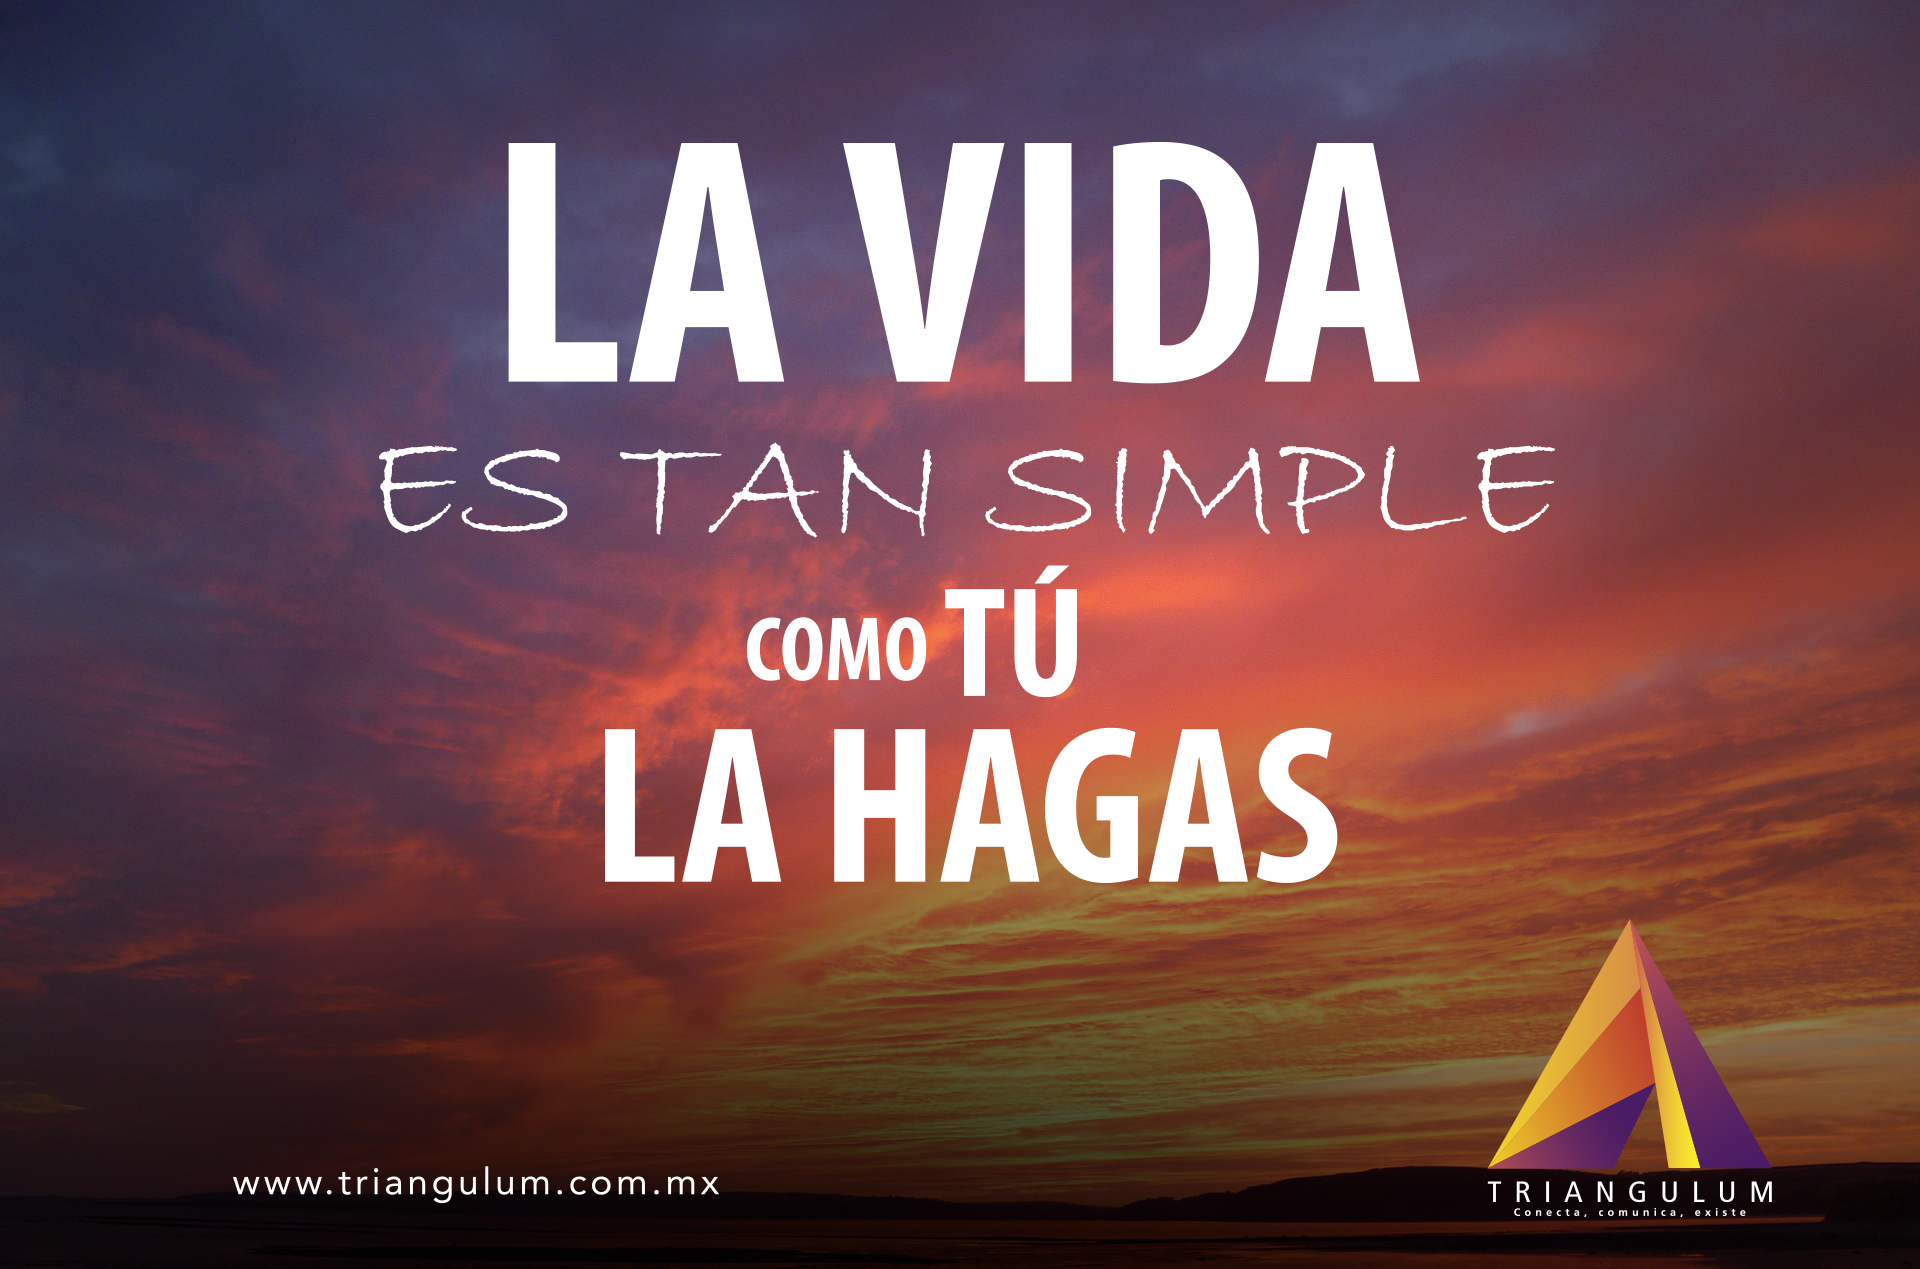 La vida es tan simple como tú la hagas